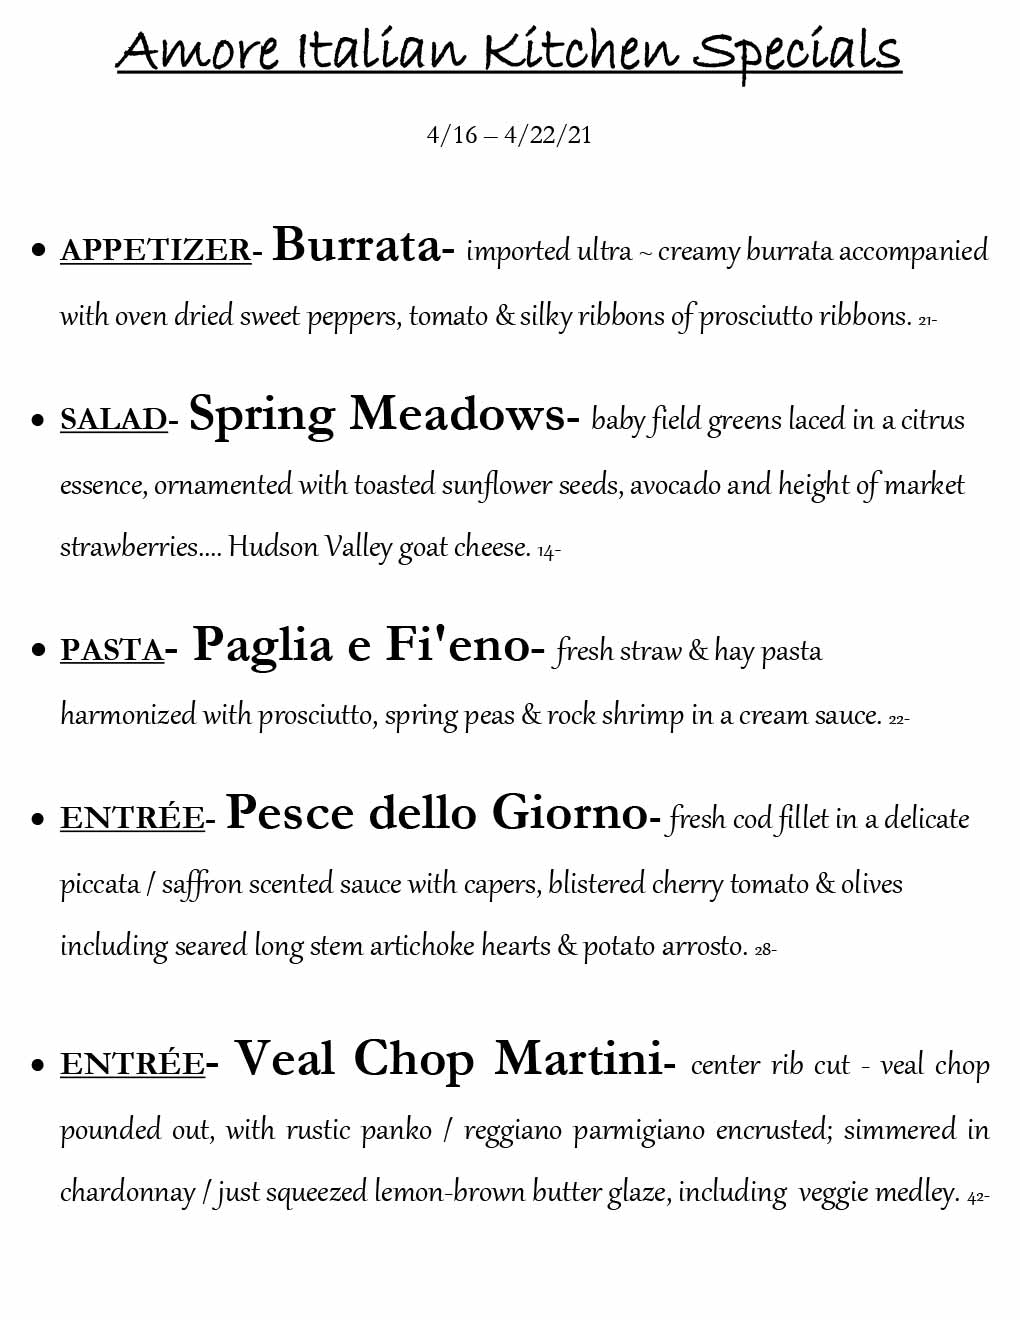 Amore weekly specials from 4/15/21 - 4/22/21